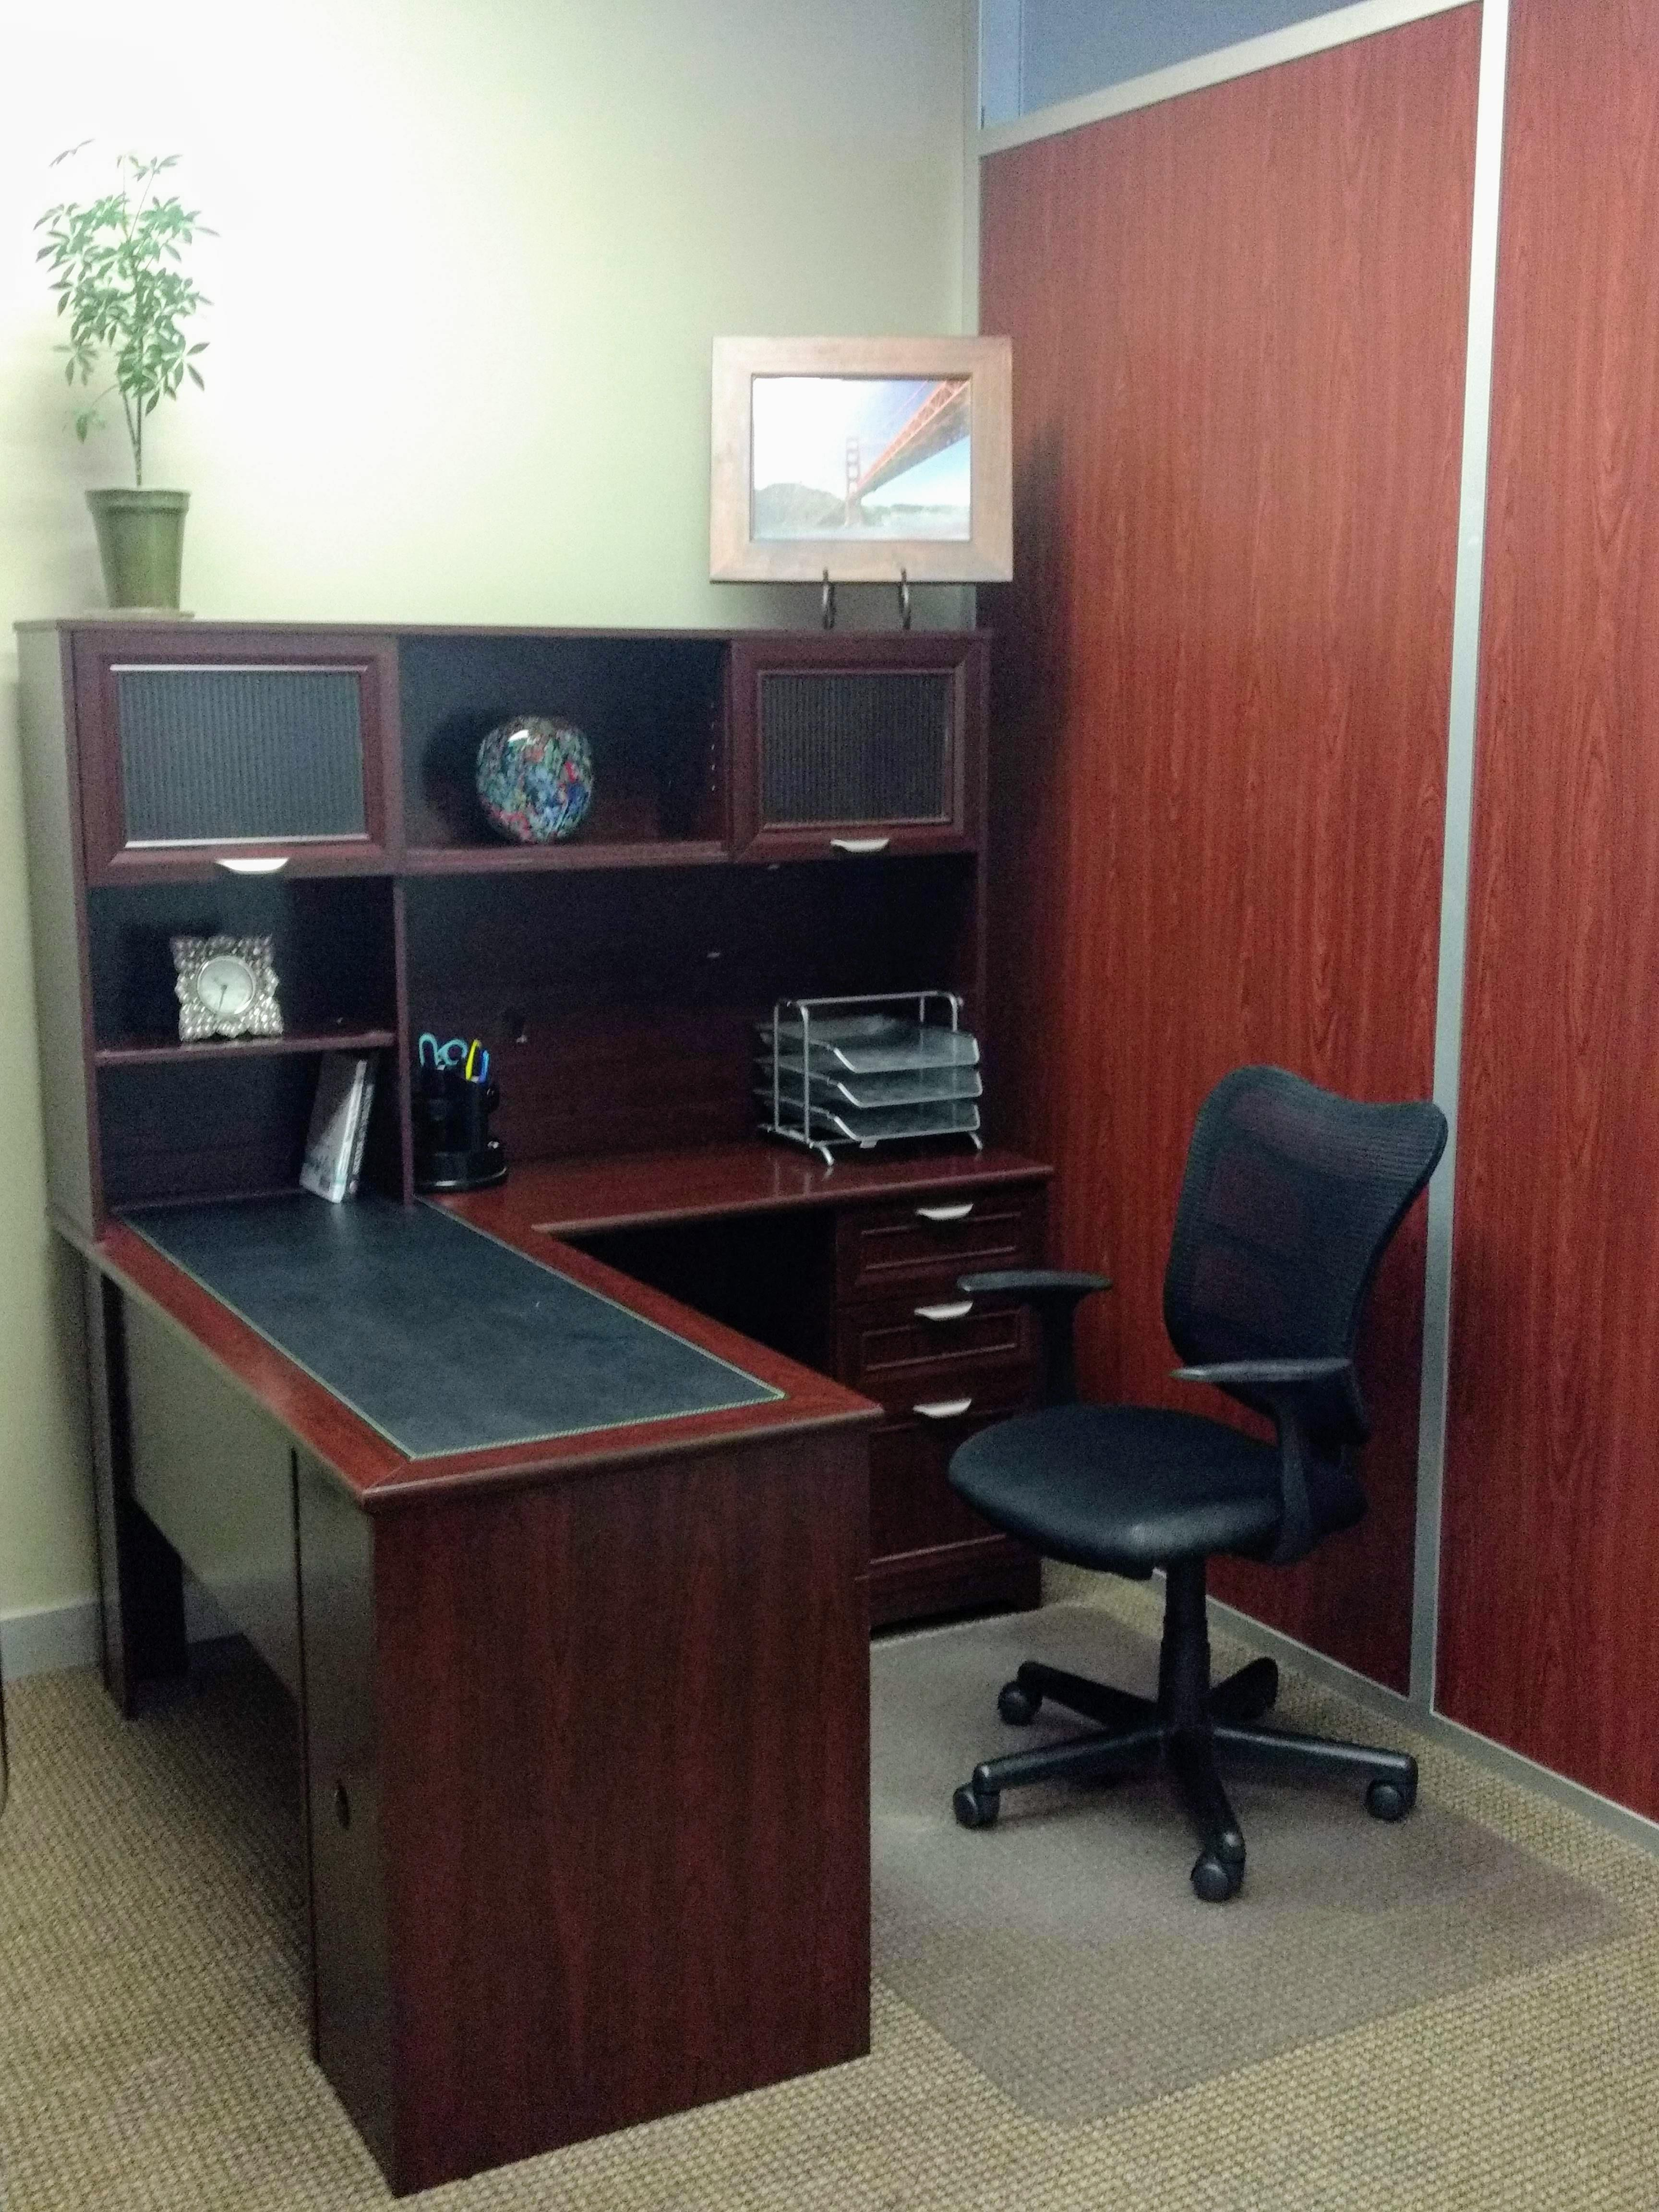 My Executive Office - Small Day Office